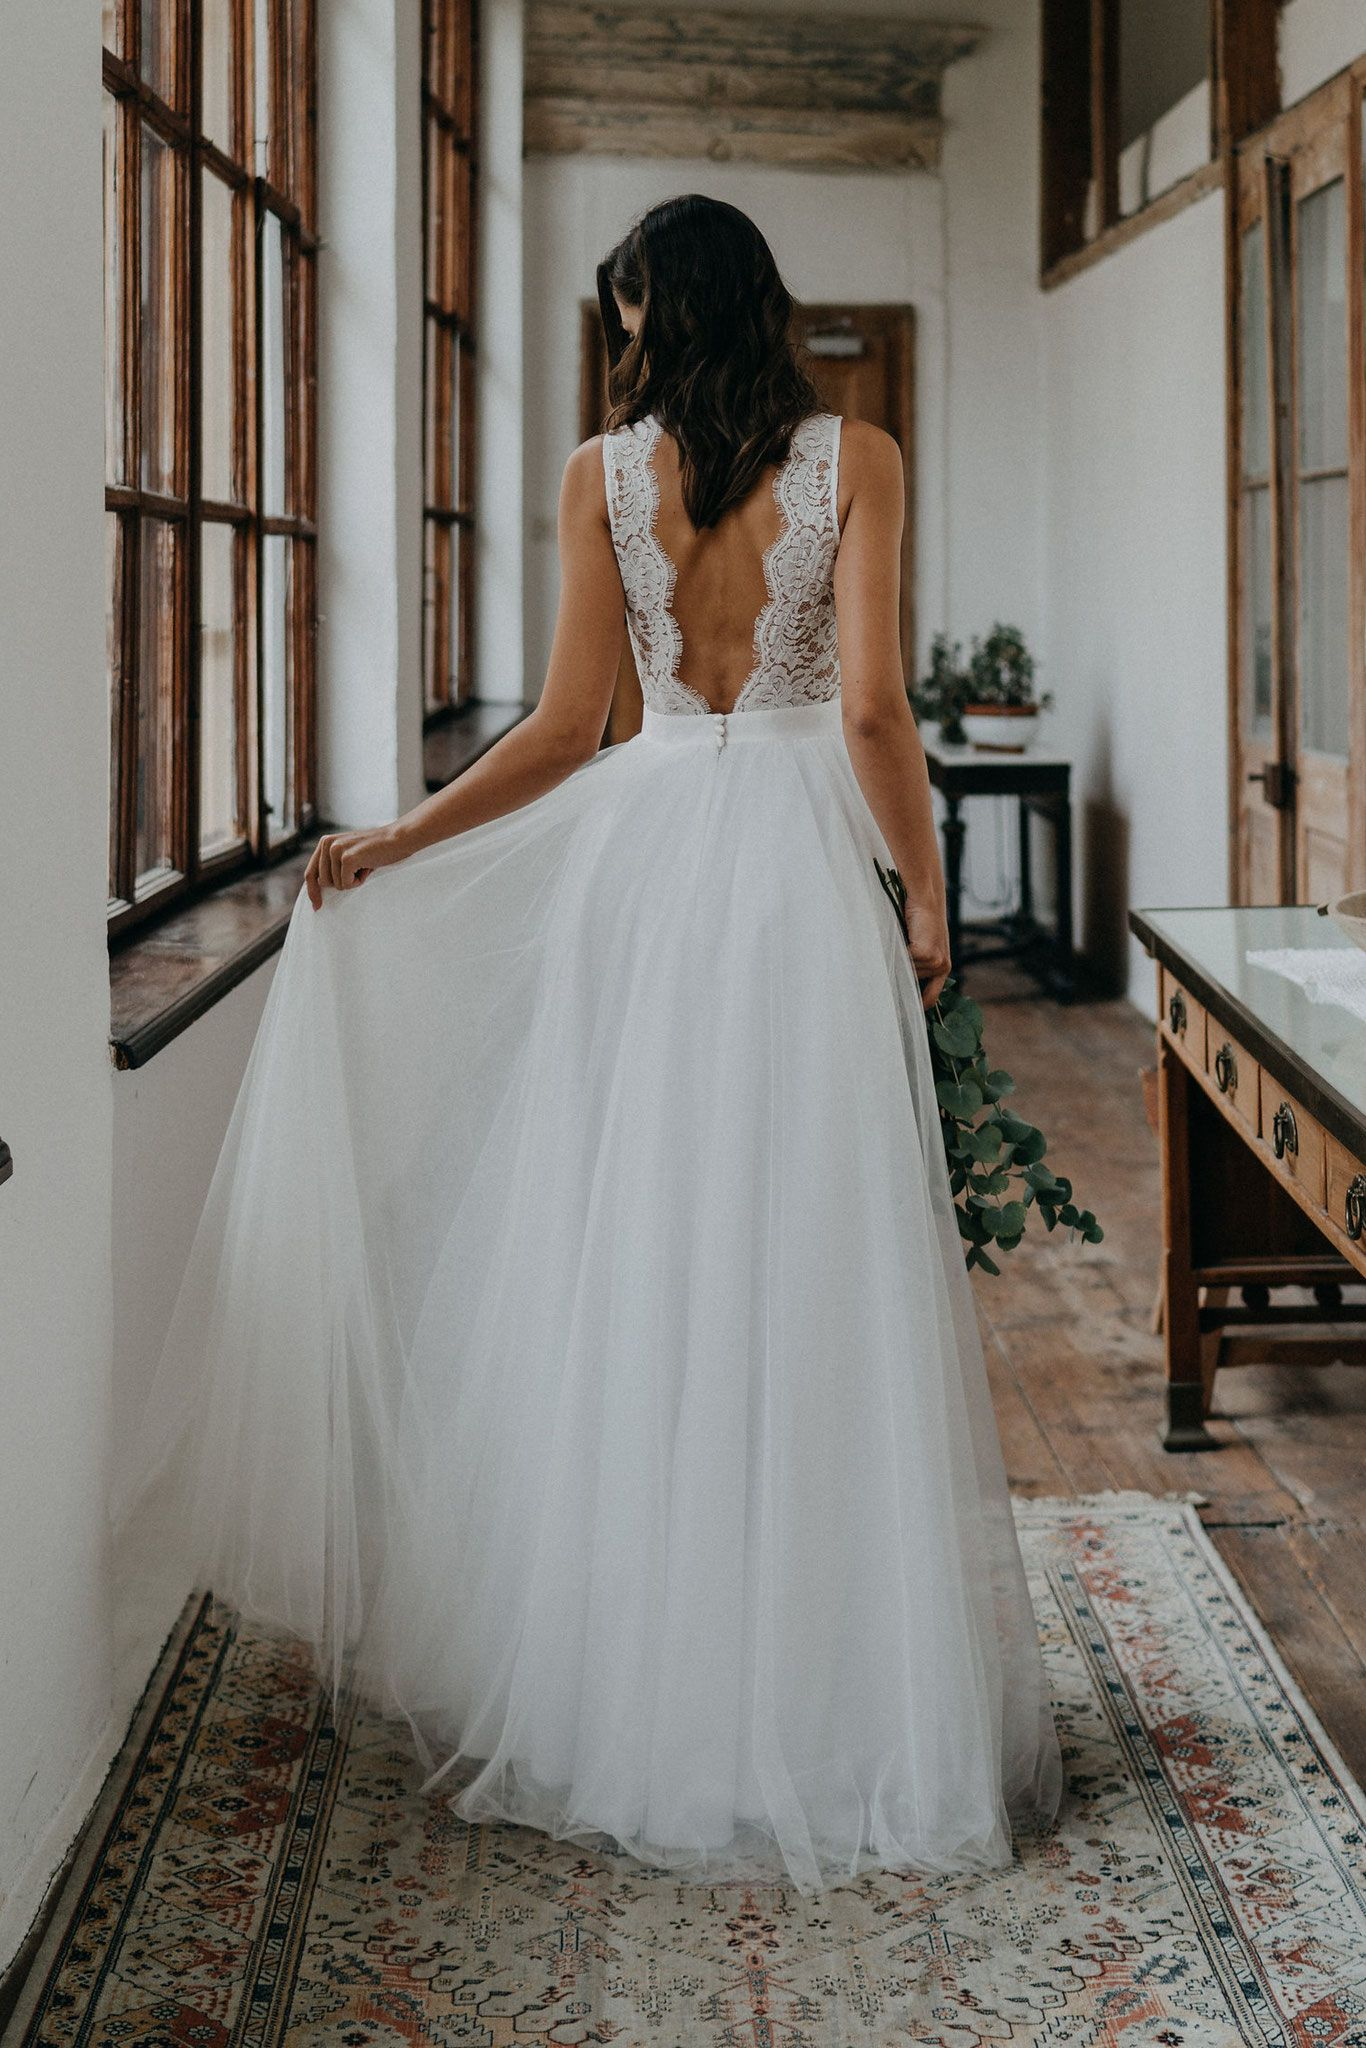 Pin Von Lauren Elise Auf Future Wedding Pinterest